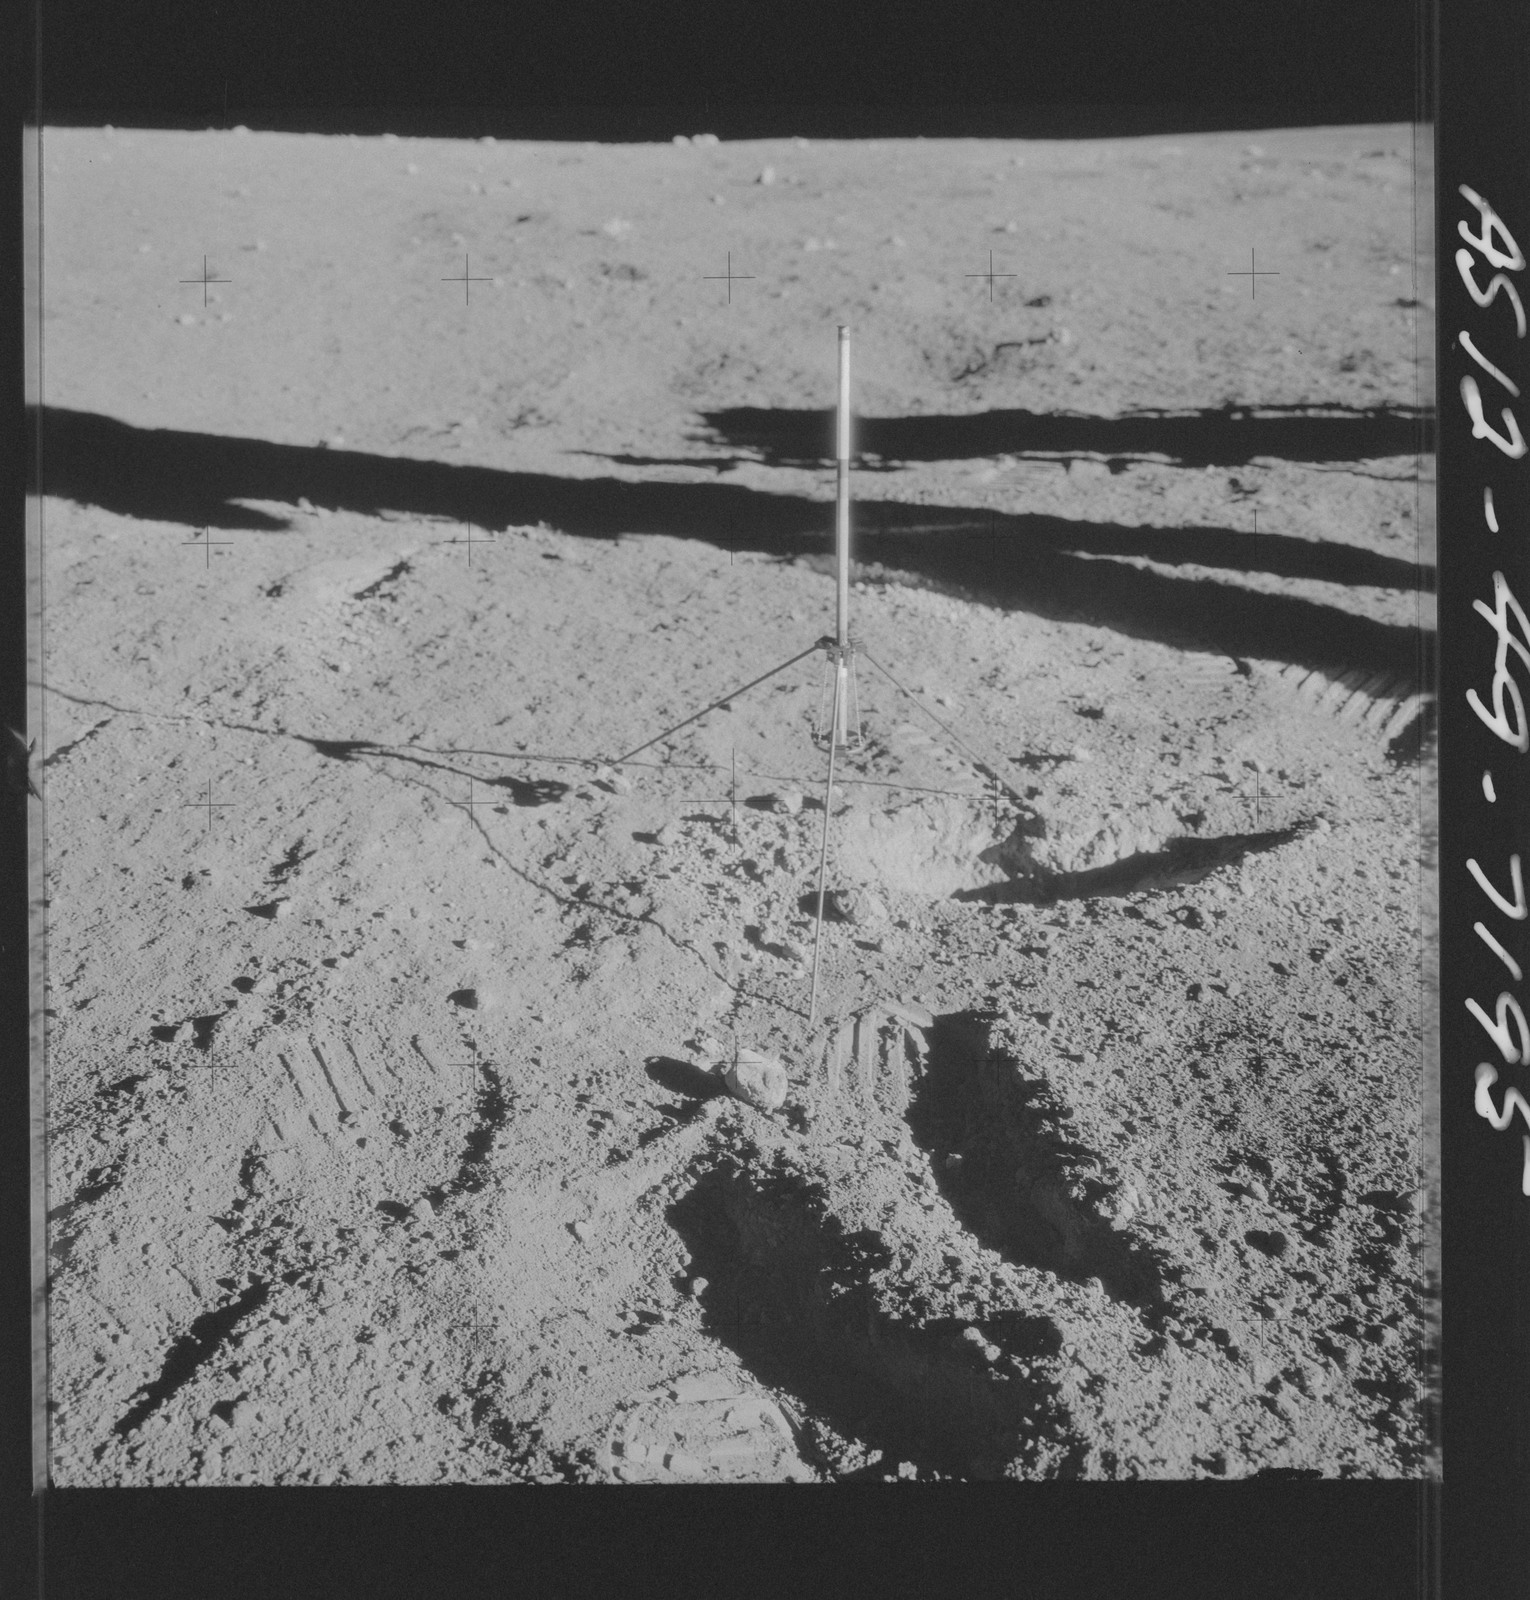 AS12-49-7195 - Apollo 12 - Apollo 12 Mission image  - View of a core sampler on the lunar surface